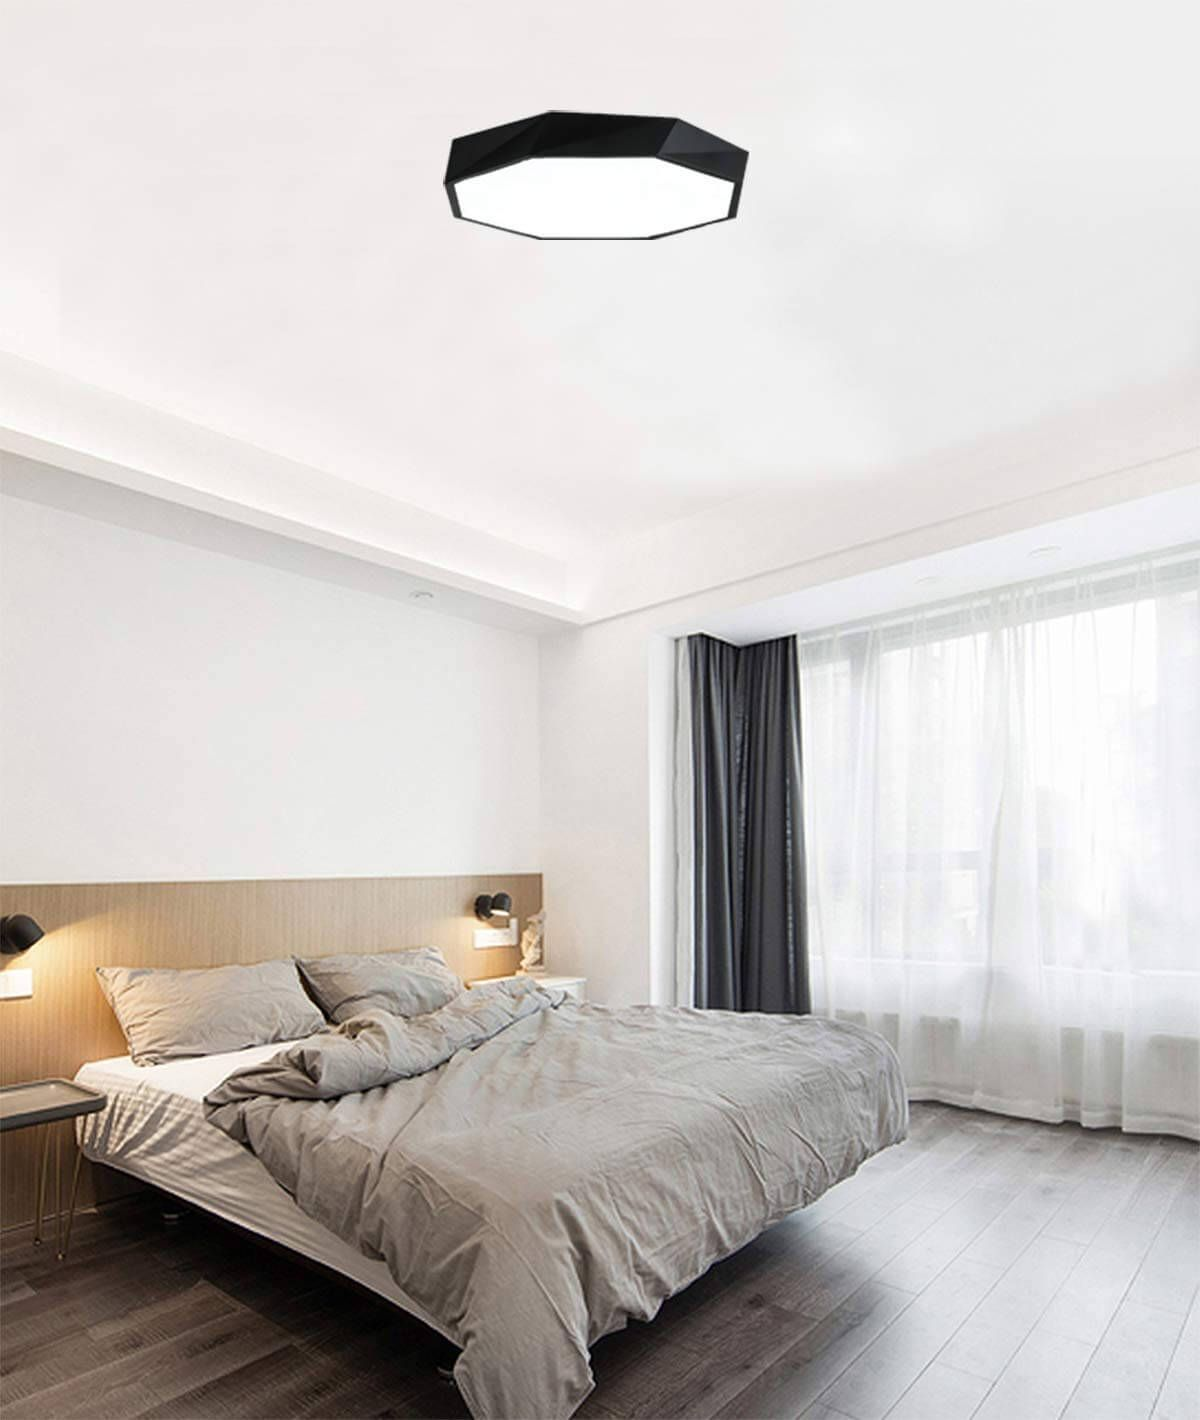 28 Bedroom Ceiling Lights To Brighten Up Your Room In A Charming